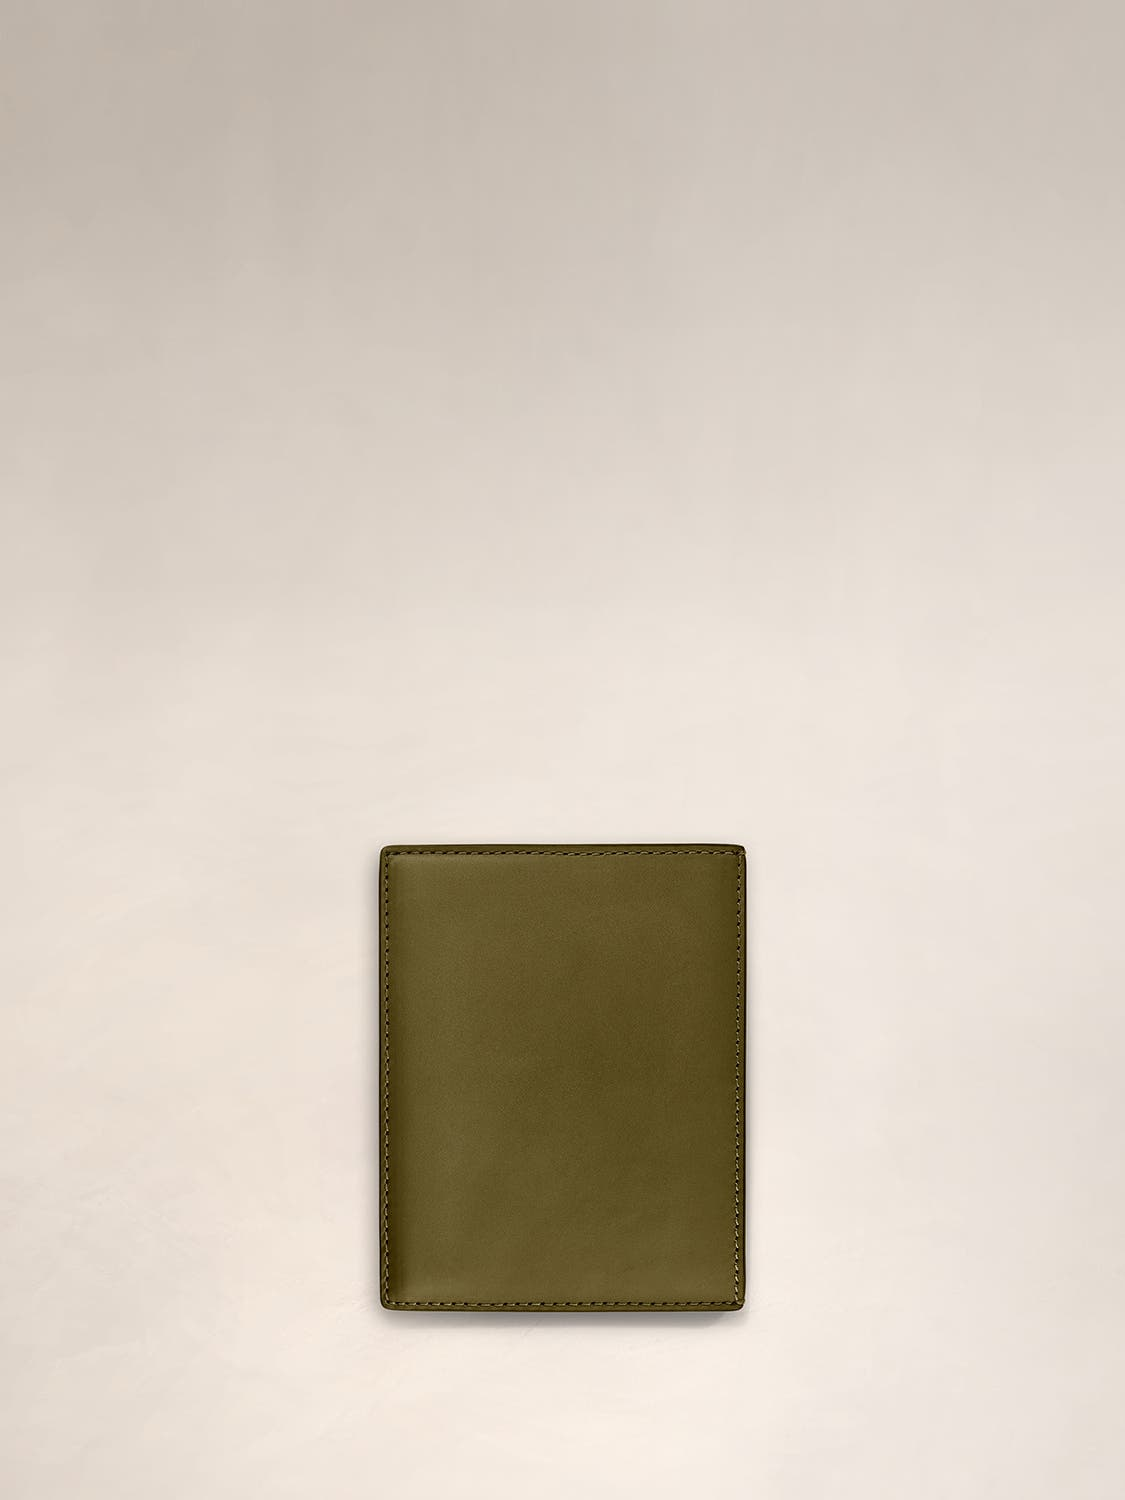 A front view of a sage green passport holder.